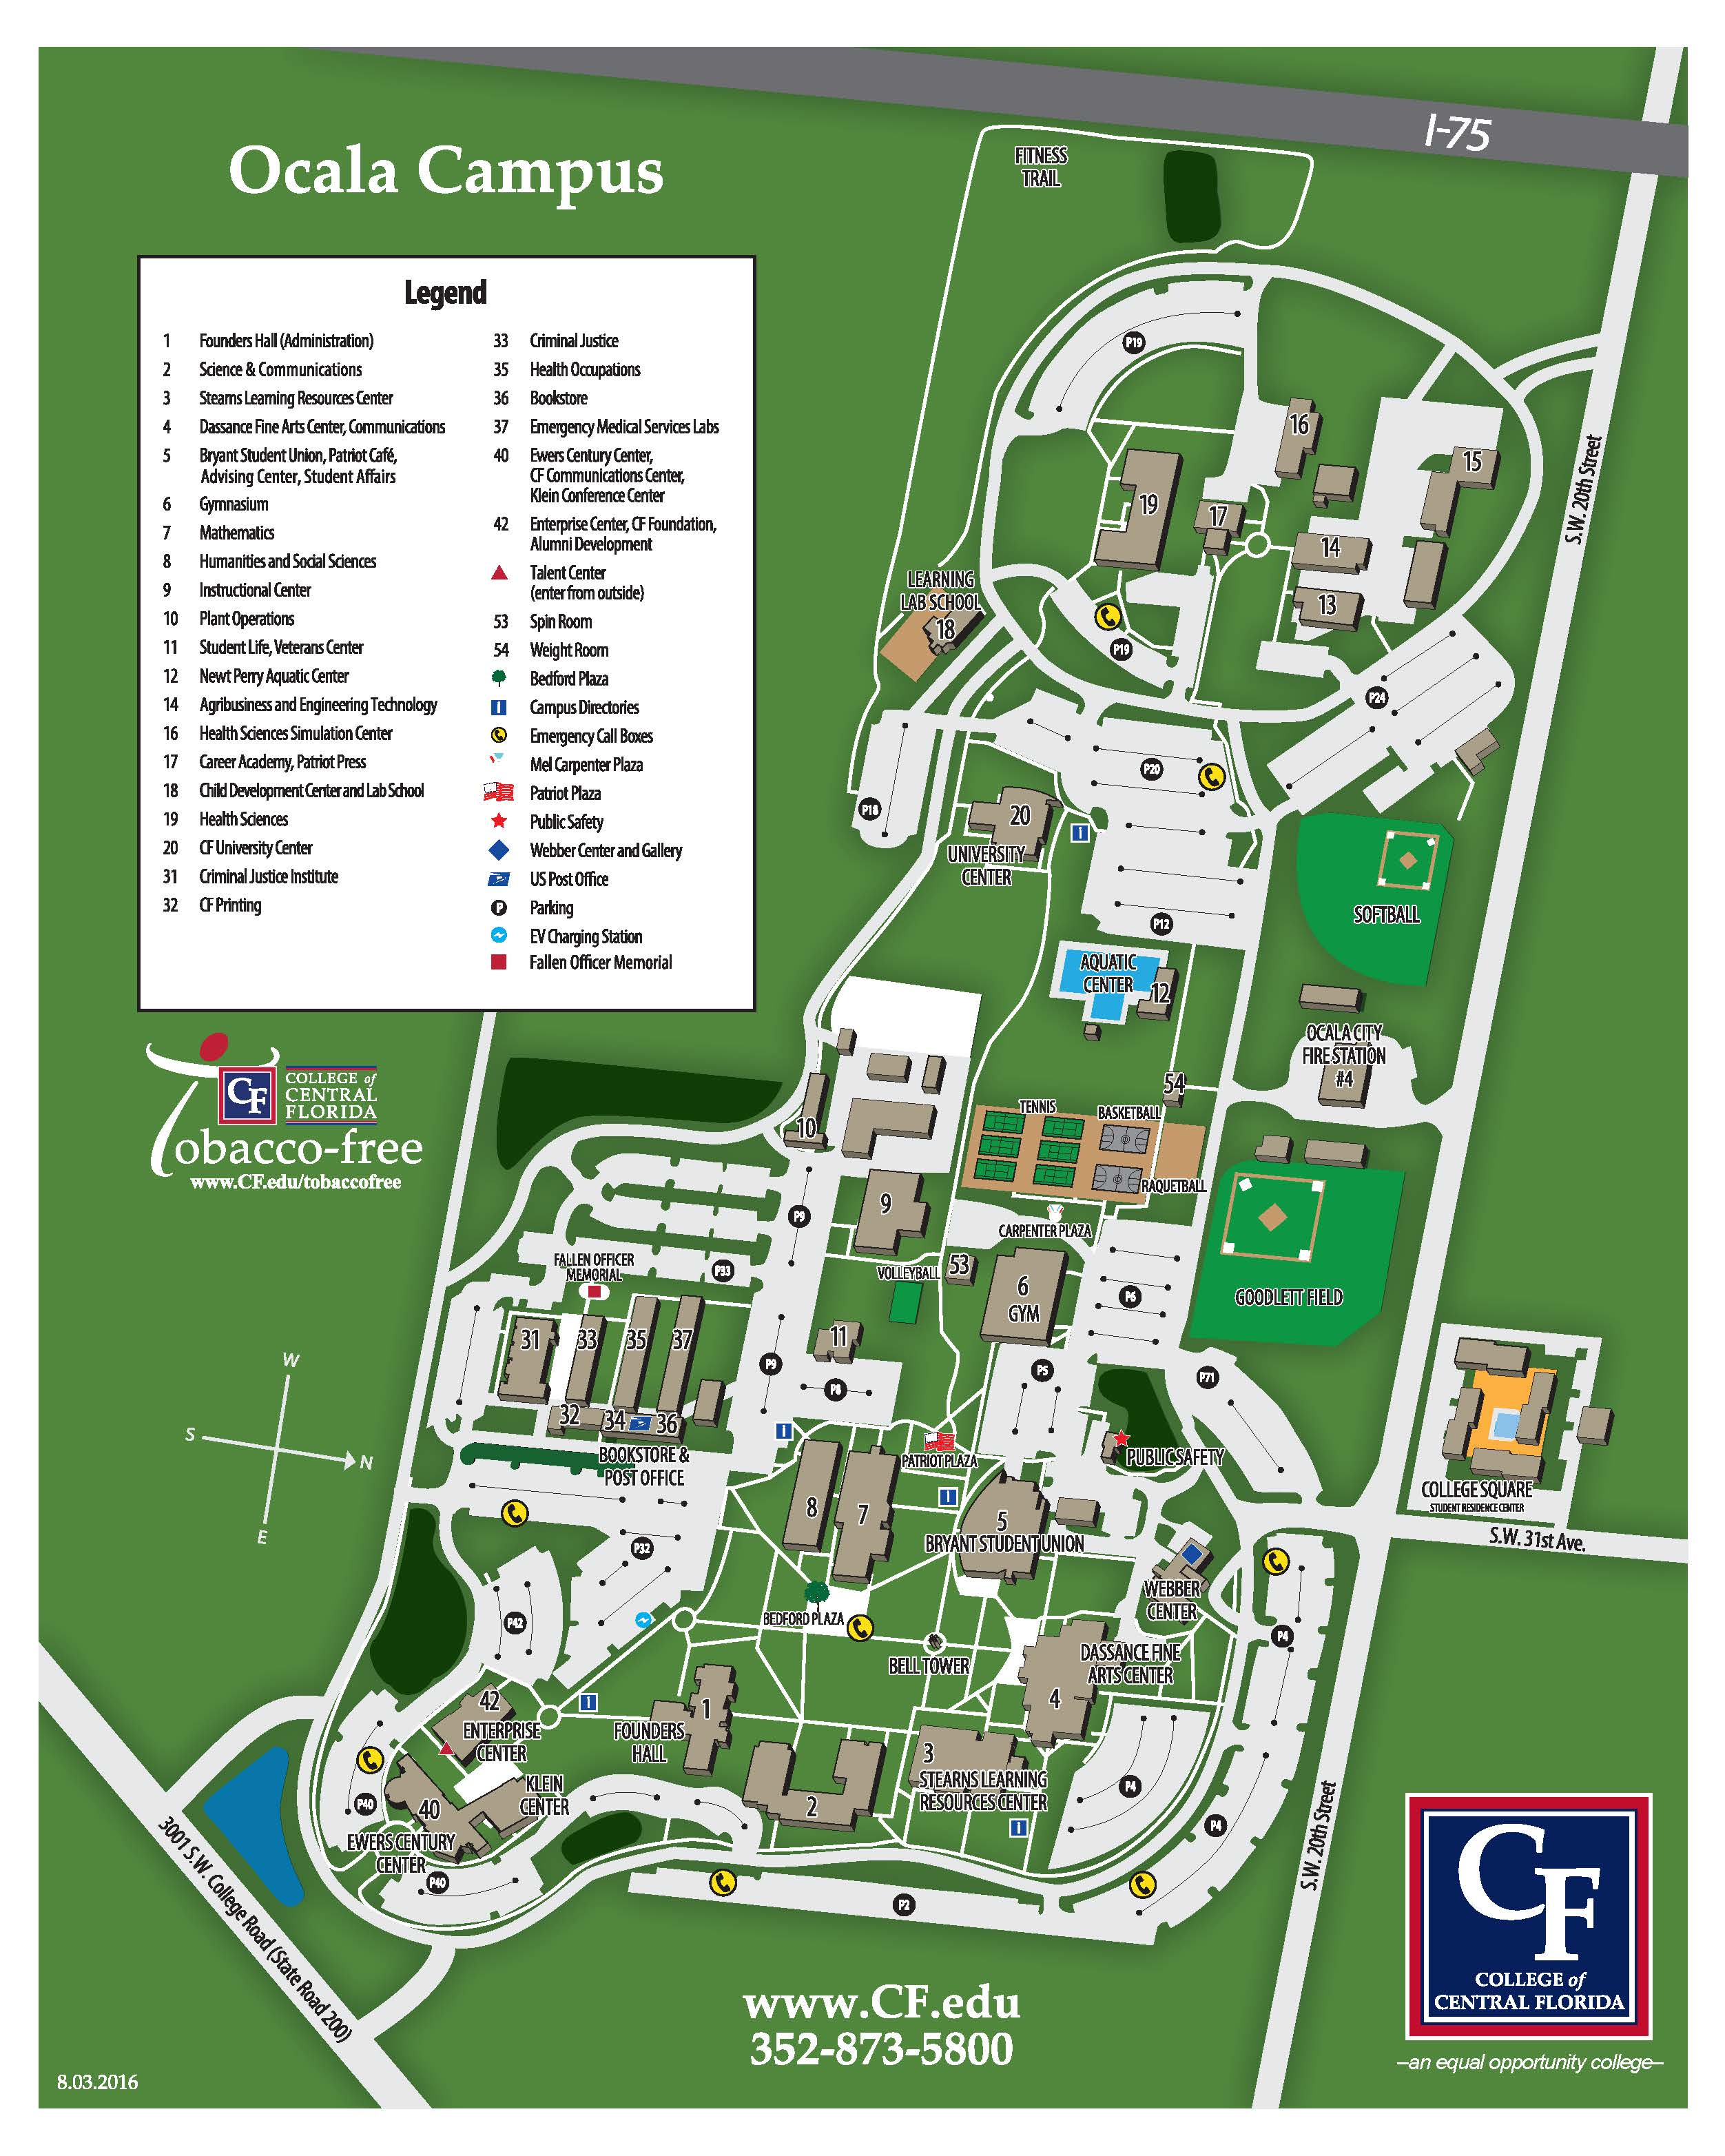 College of Central Florida - Ocala Campus Map on